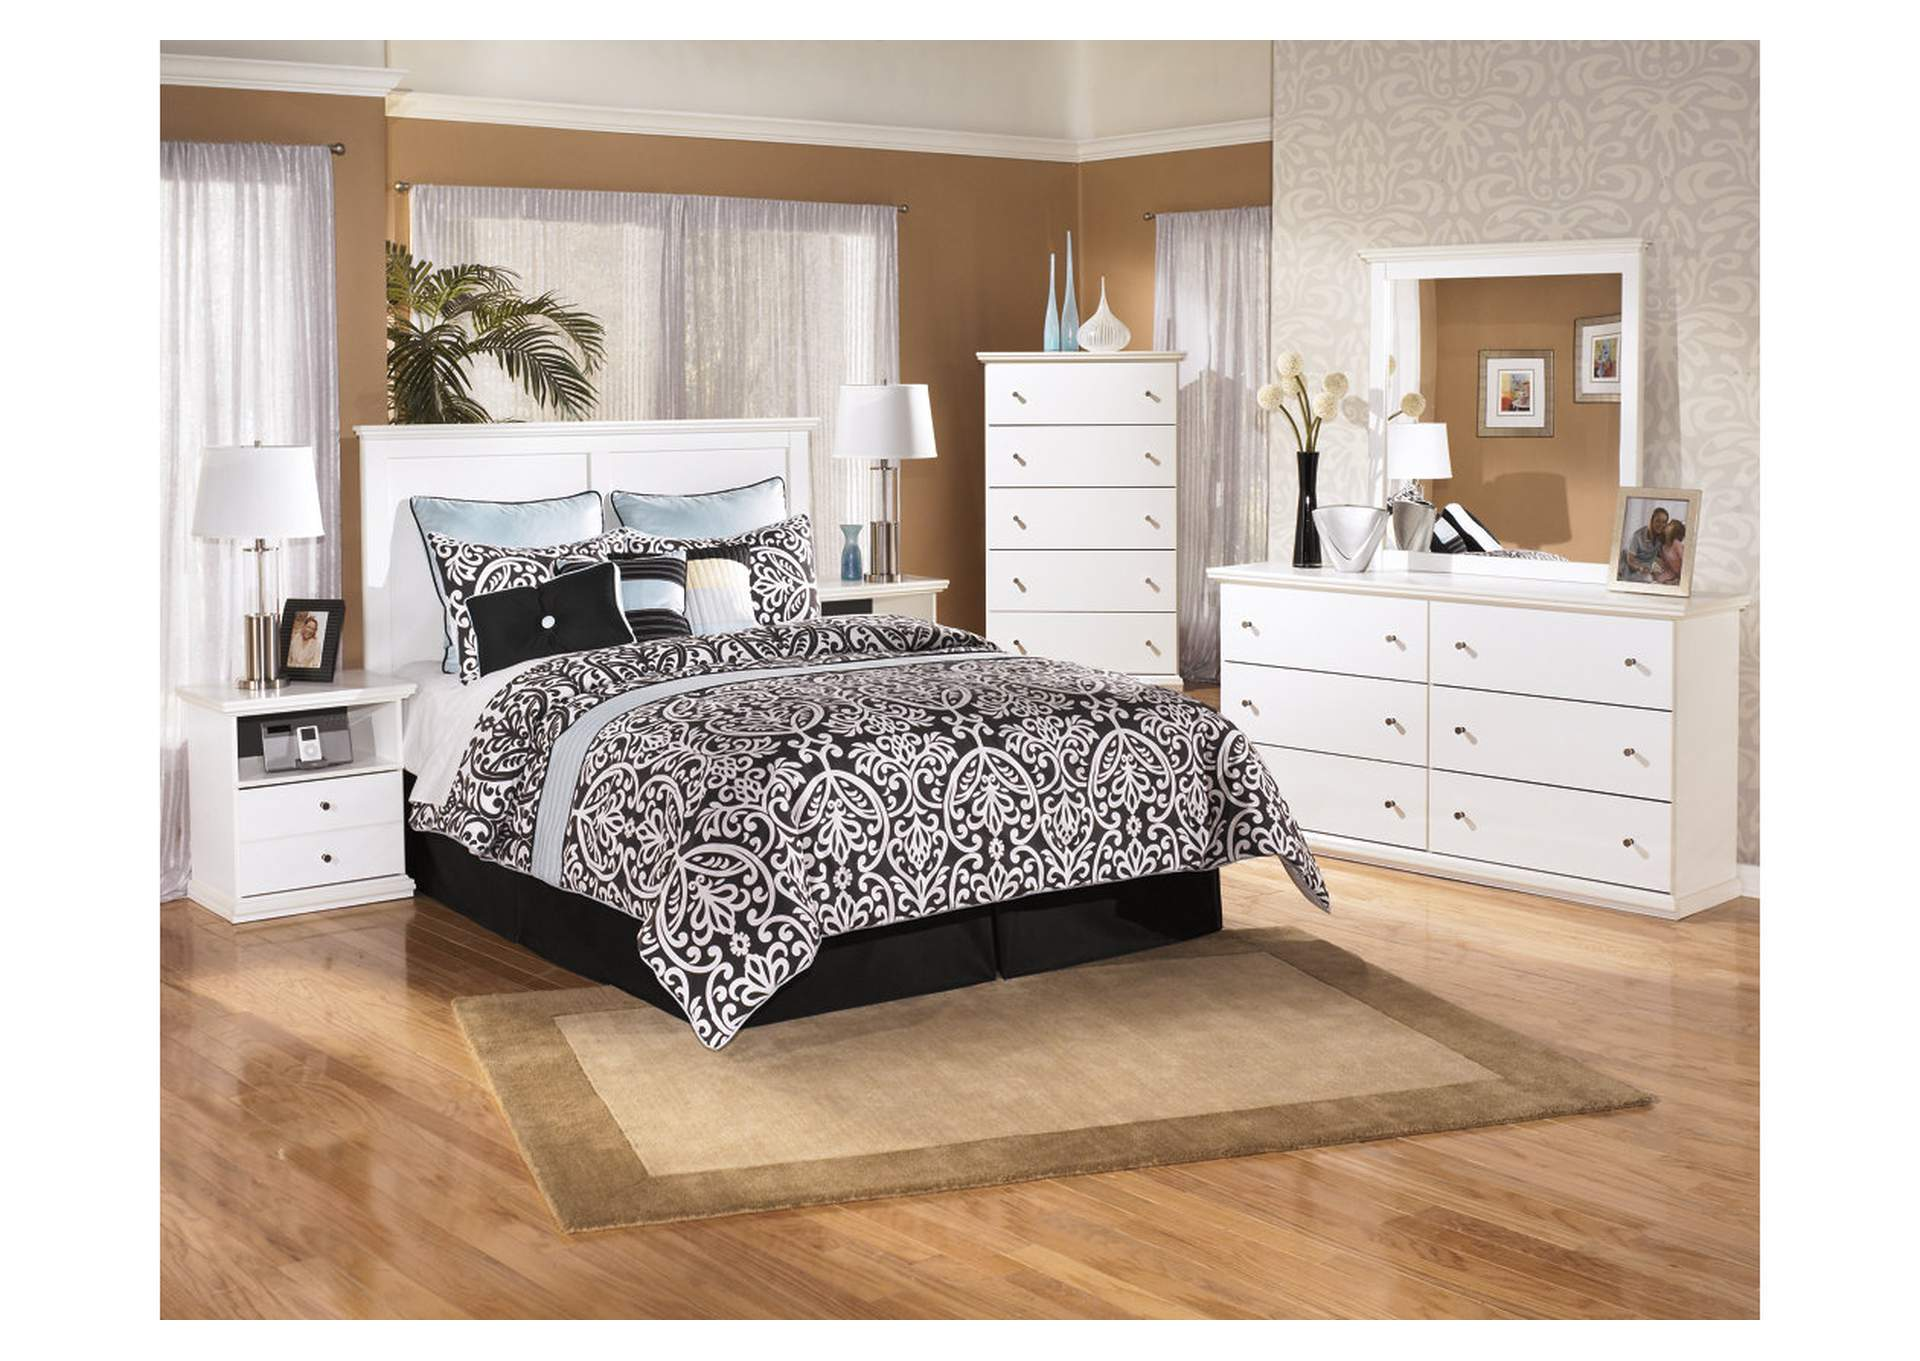 Bostwick Shoals White Queen/Full Panel Headboard w/Dresser, Mirror, Drawer Chest & Nightstand,Signature Design By Ashley